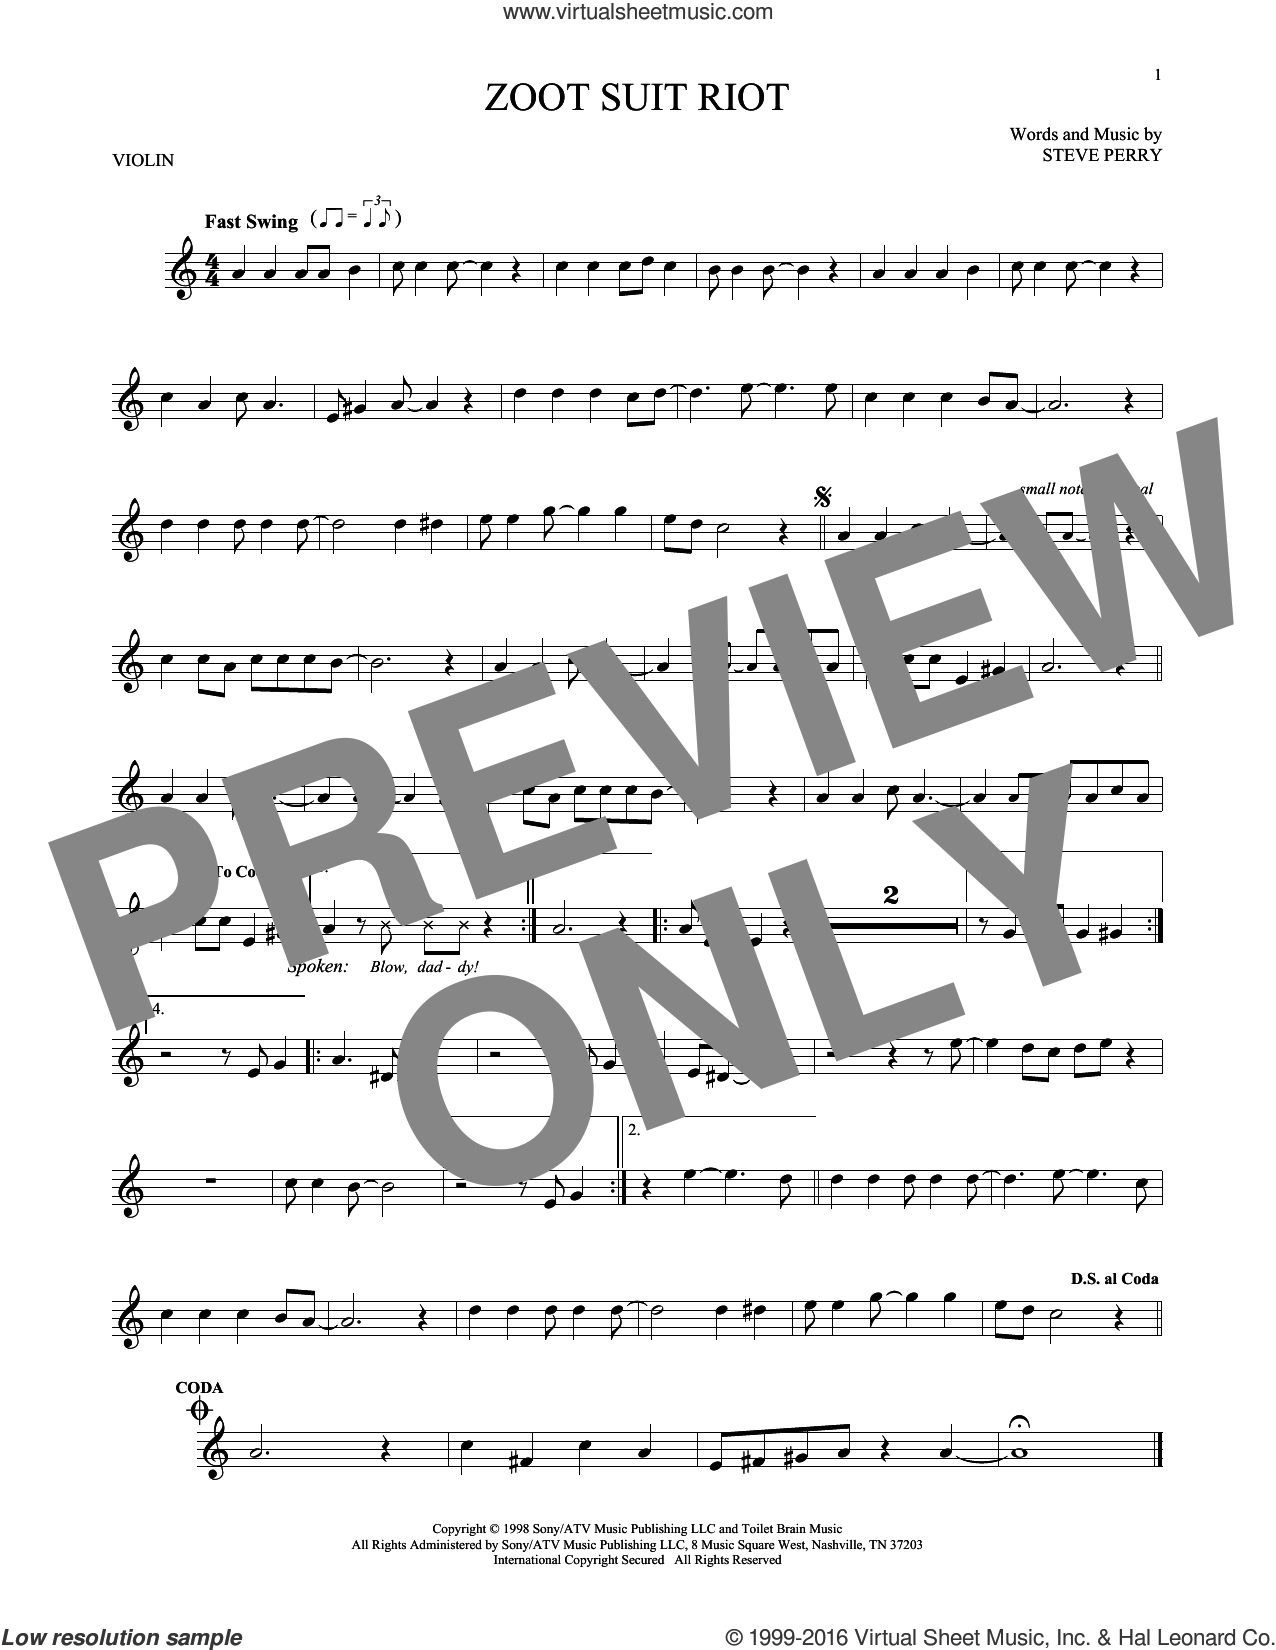 Zoot Suit Riot sheet music for violin solo by Cherry Poppin' Daddies and Steve Perry, intermediate skill level